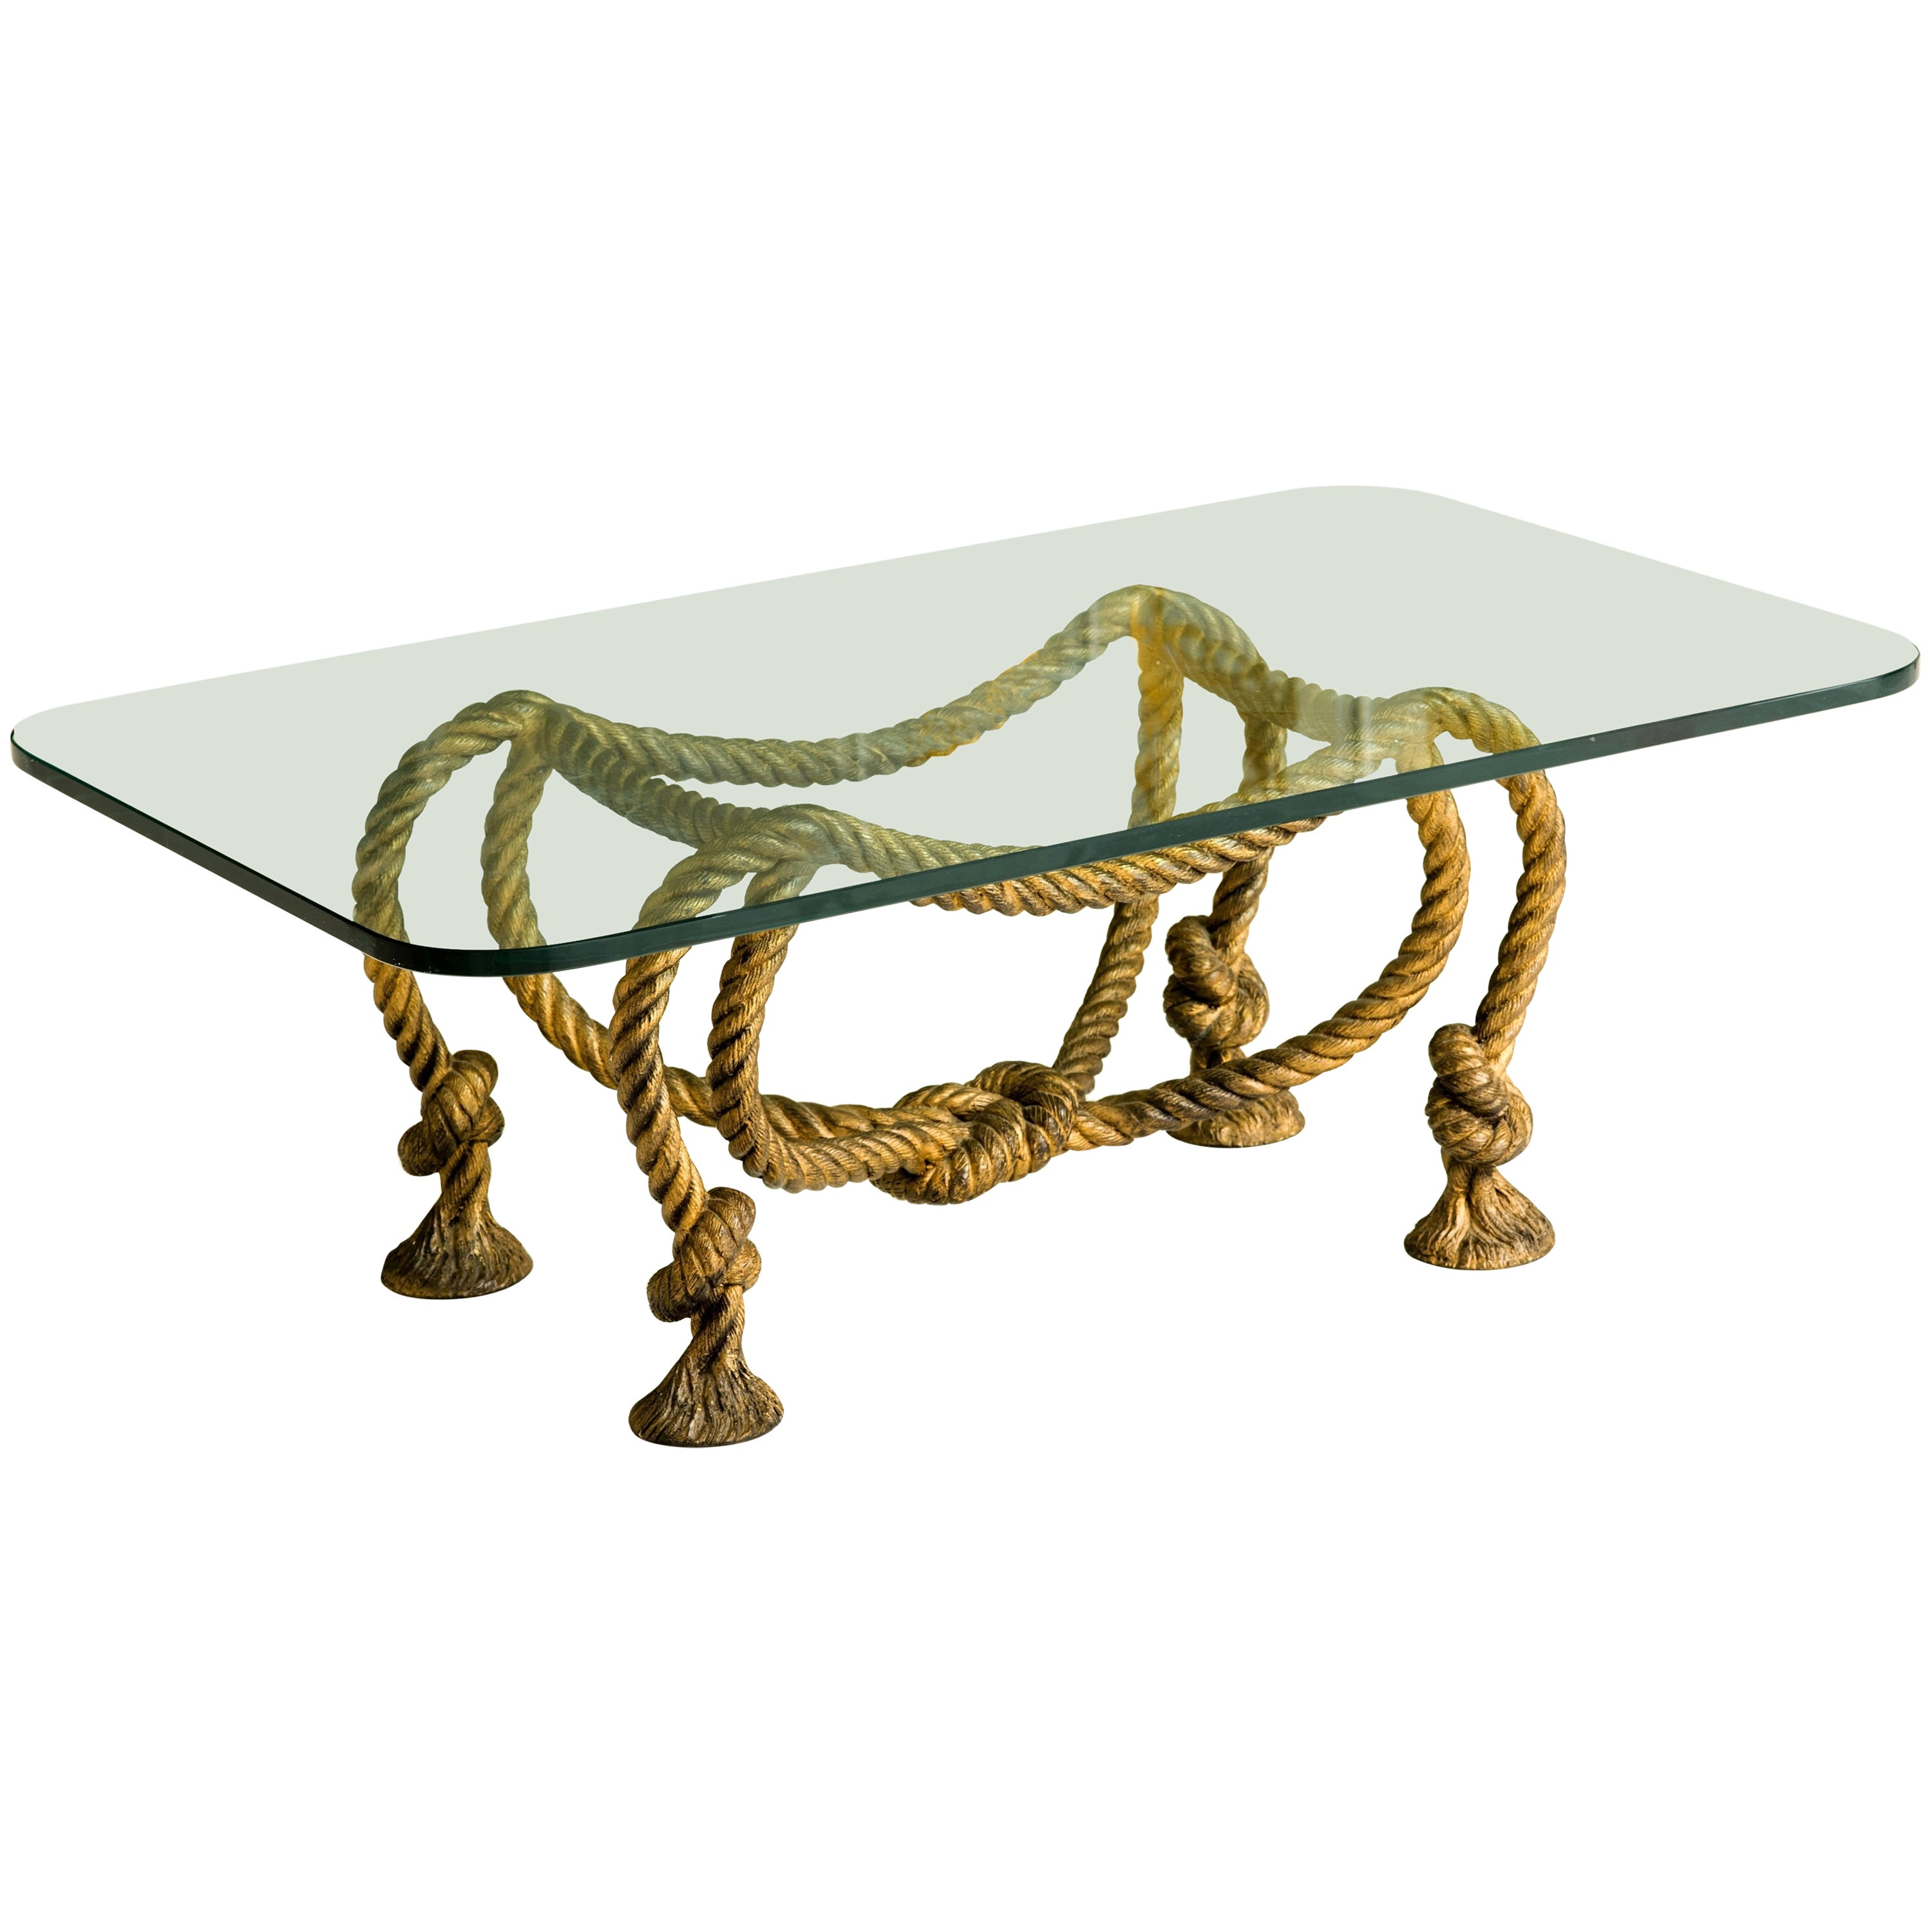 Maison Jansen Style Coffee Table with Rope and Tassel Feet